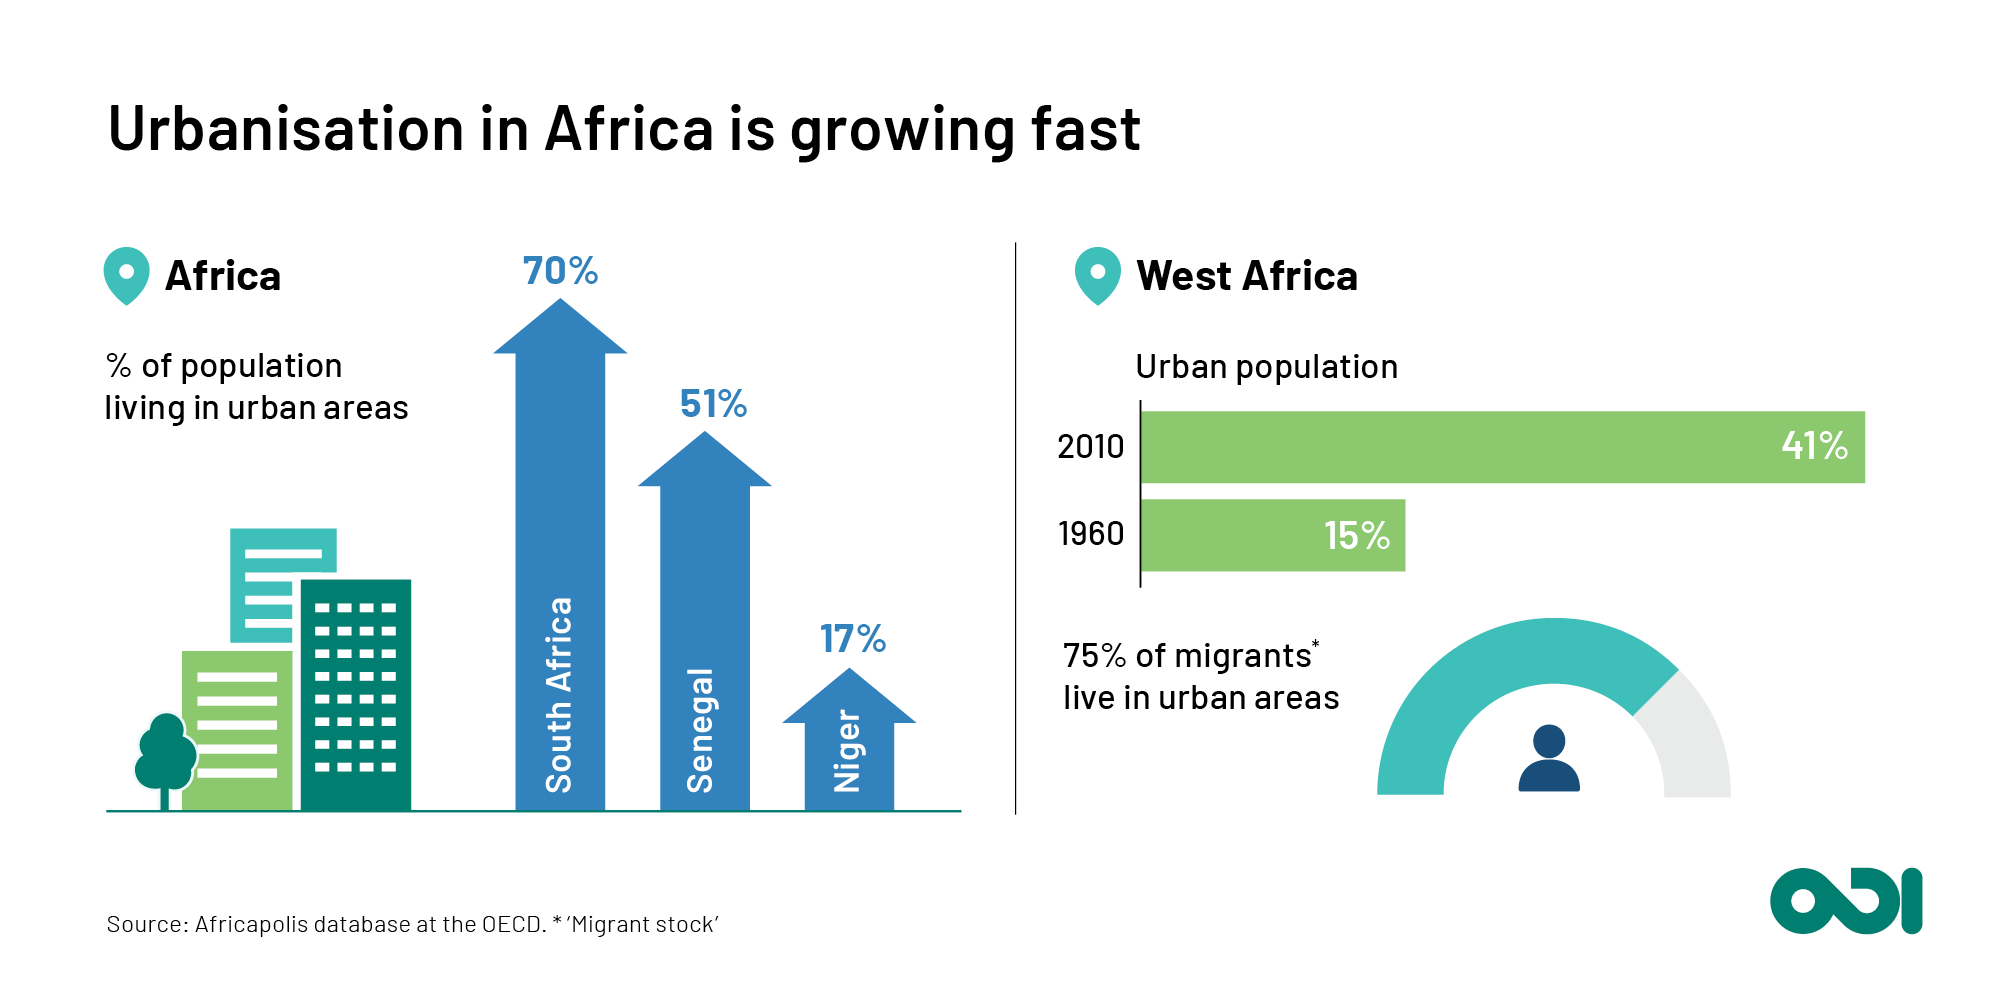 Urbanisation in Africa is growing fast